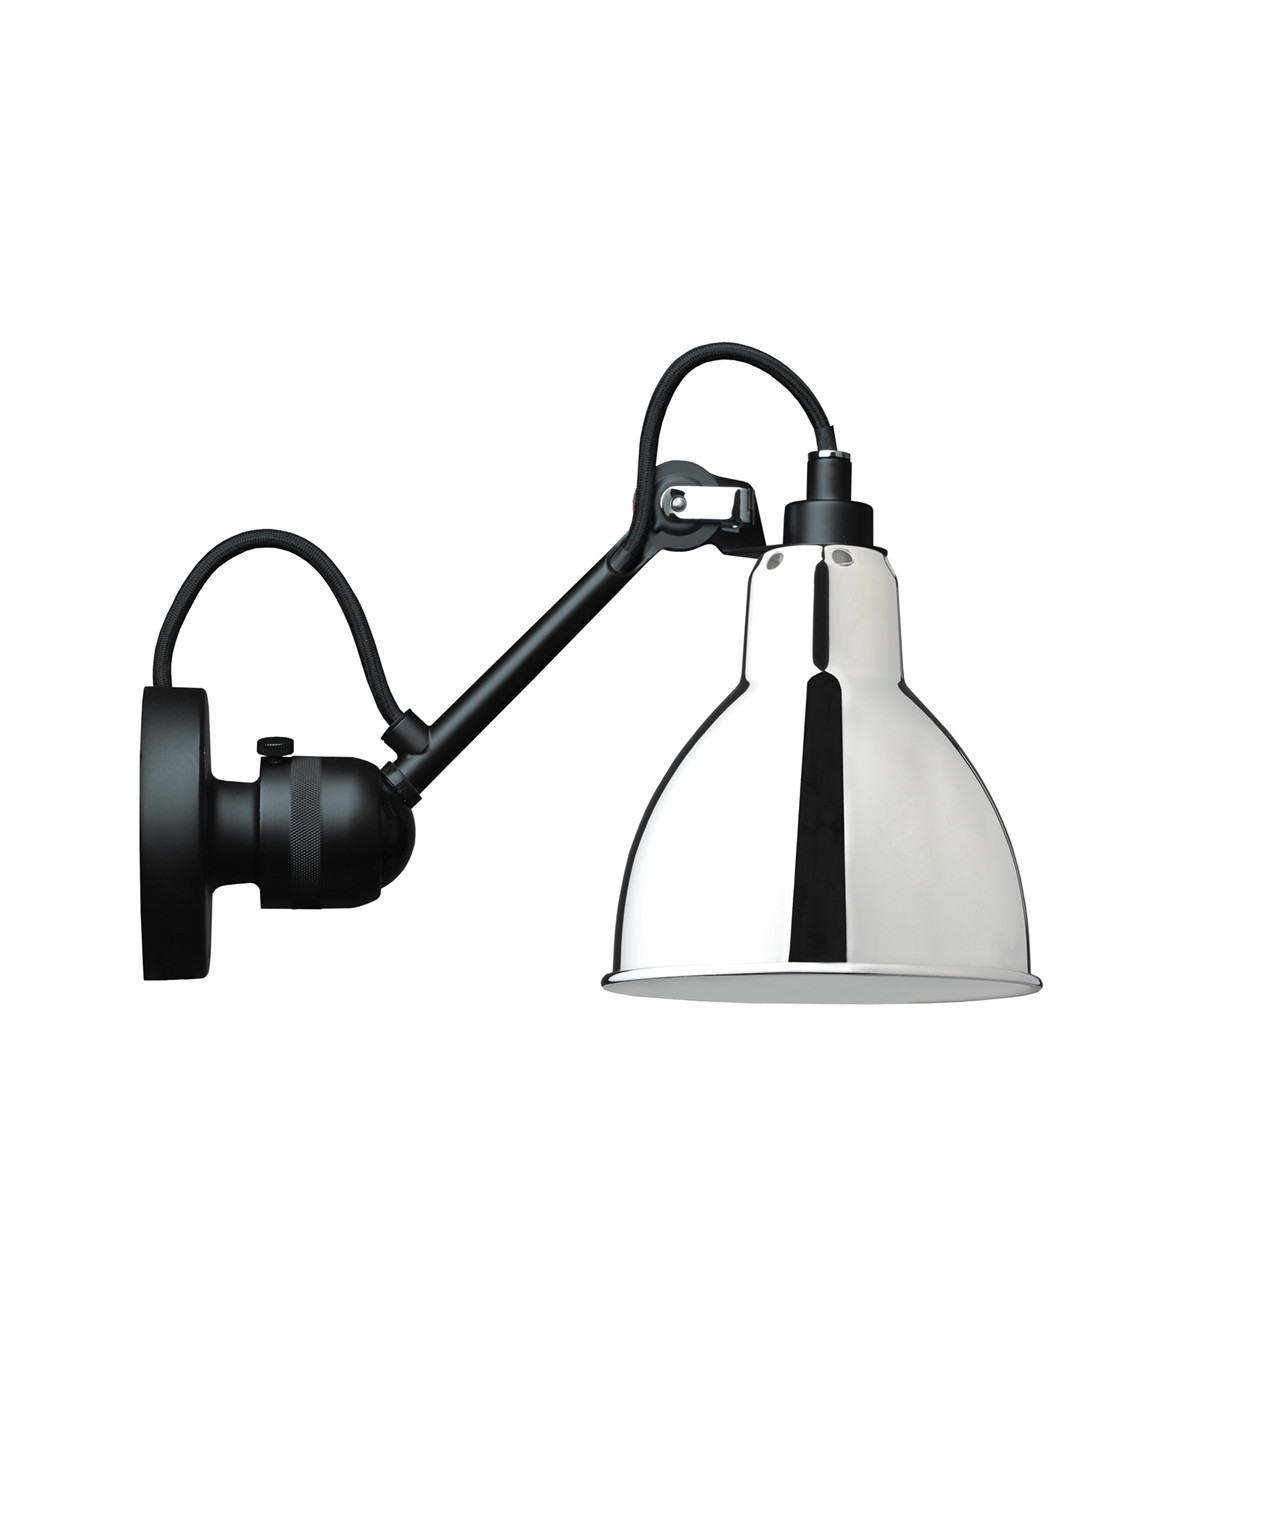 Image of   304 Væglampe Krom/Glossy - Lampe Gras